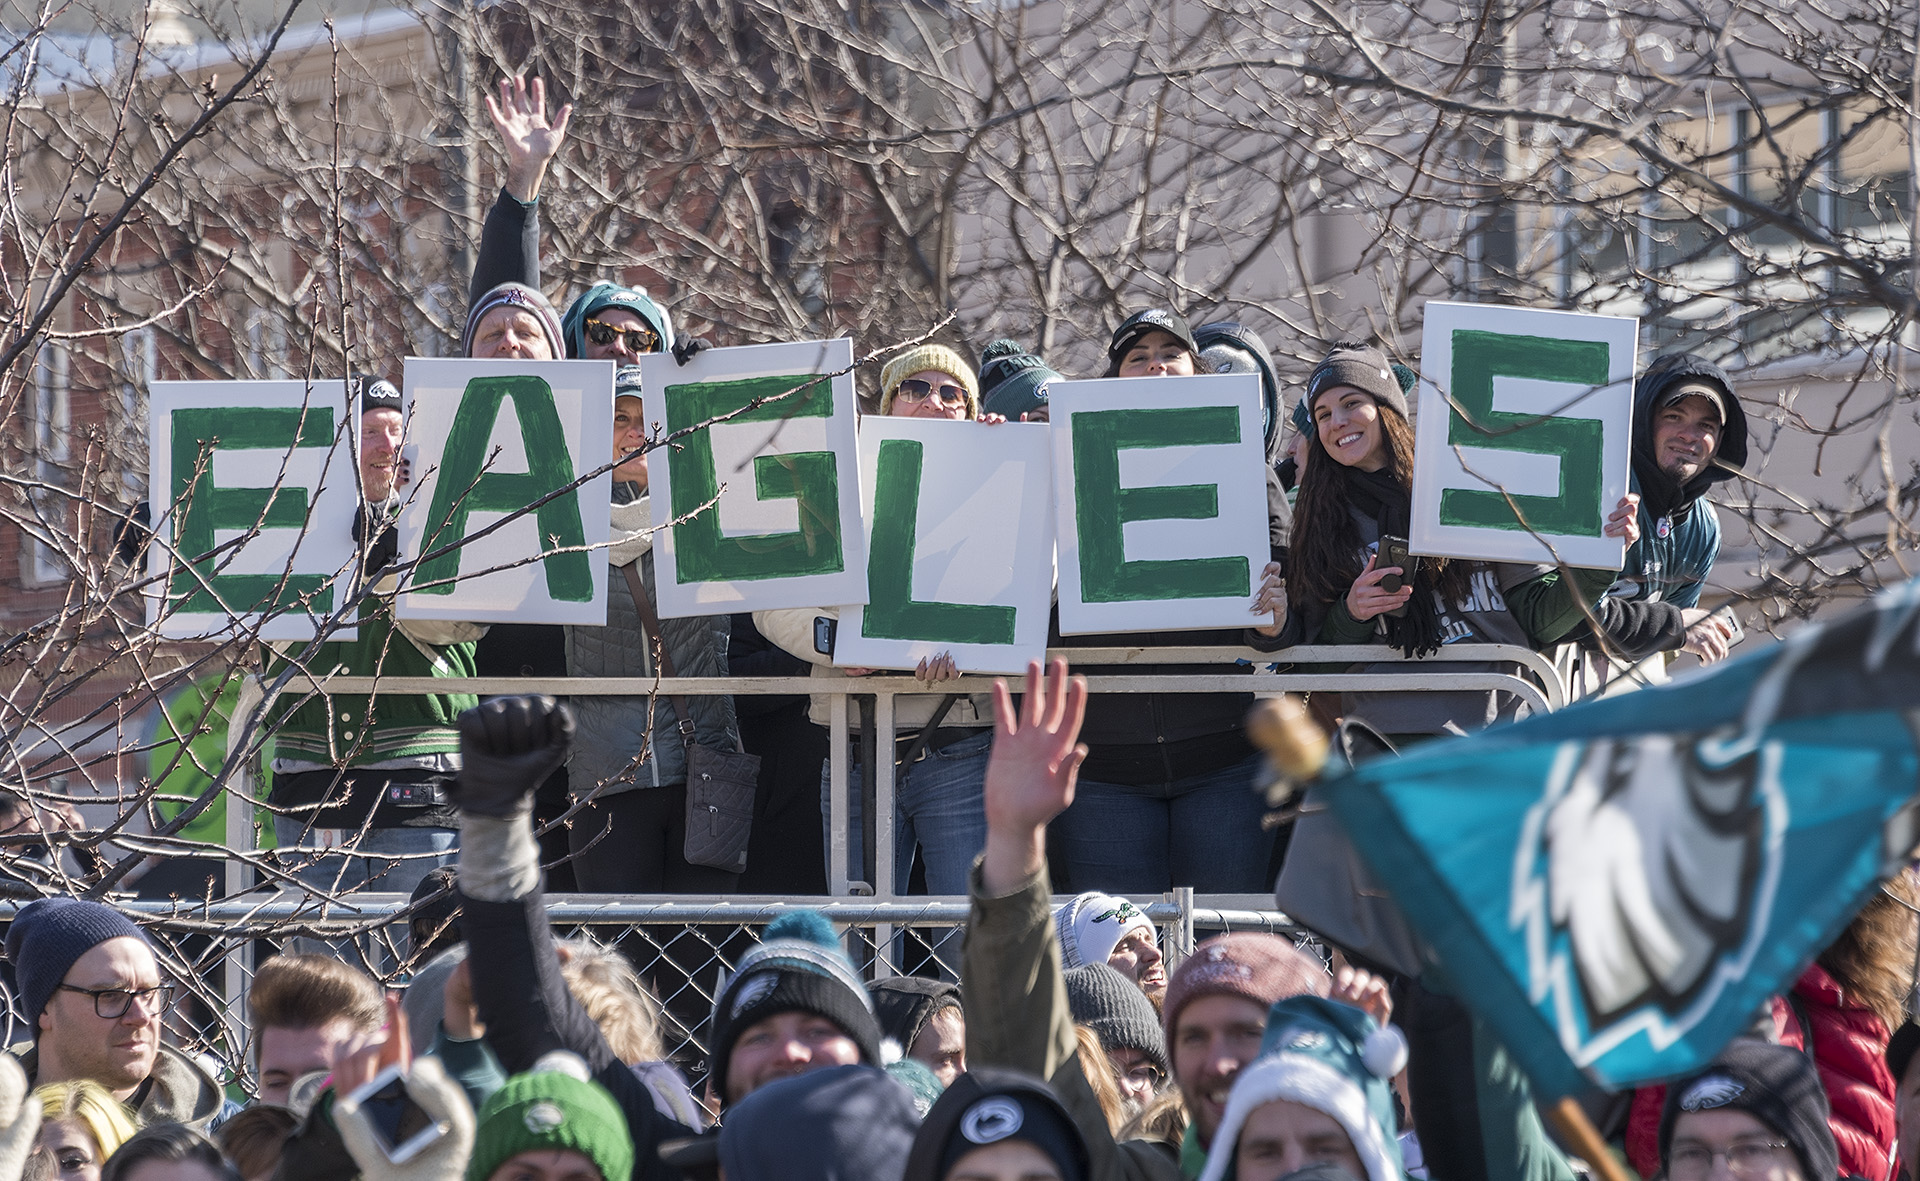 <div class='meta'><div class='origin-logo' data-origin='none'></div><span class='caption-text' data-credit=''>The Philadelphia Eagles celebrate their first Super Bowl championship with a parade and ceremony on February 8, 2018.</span></div>